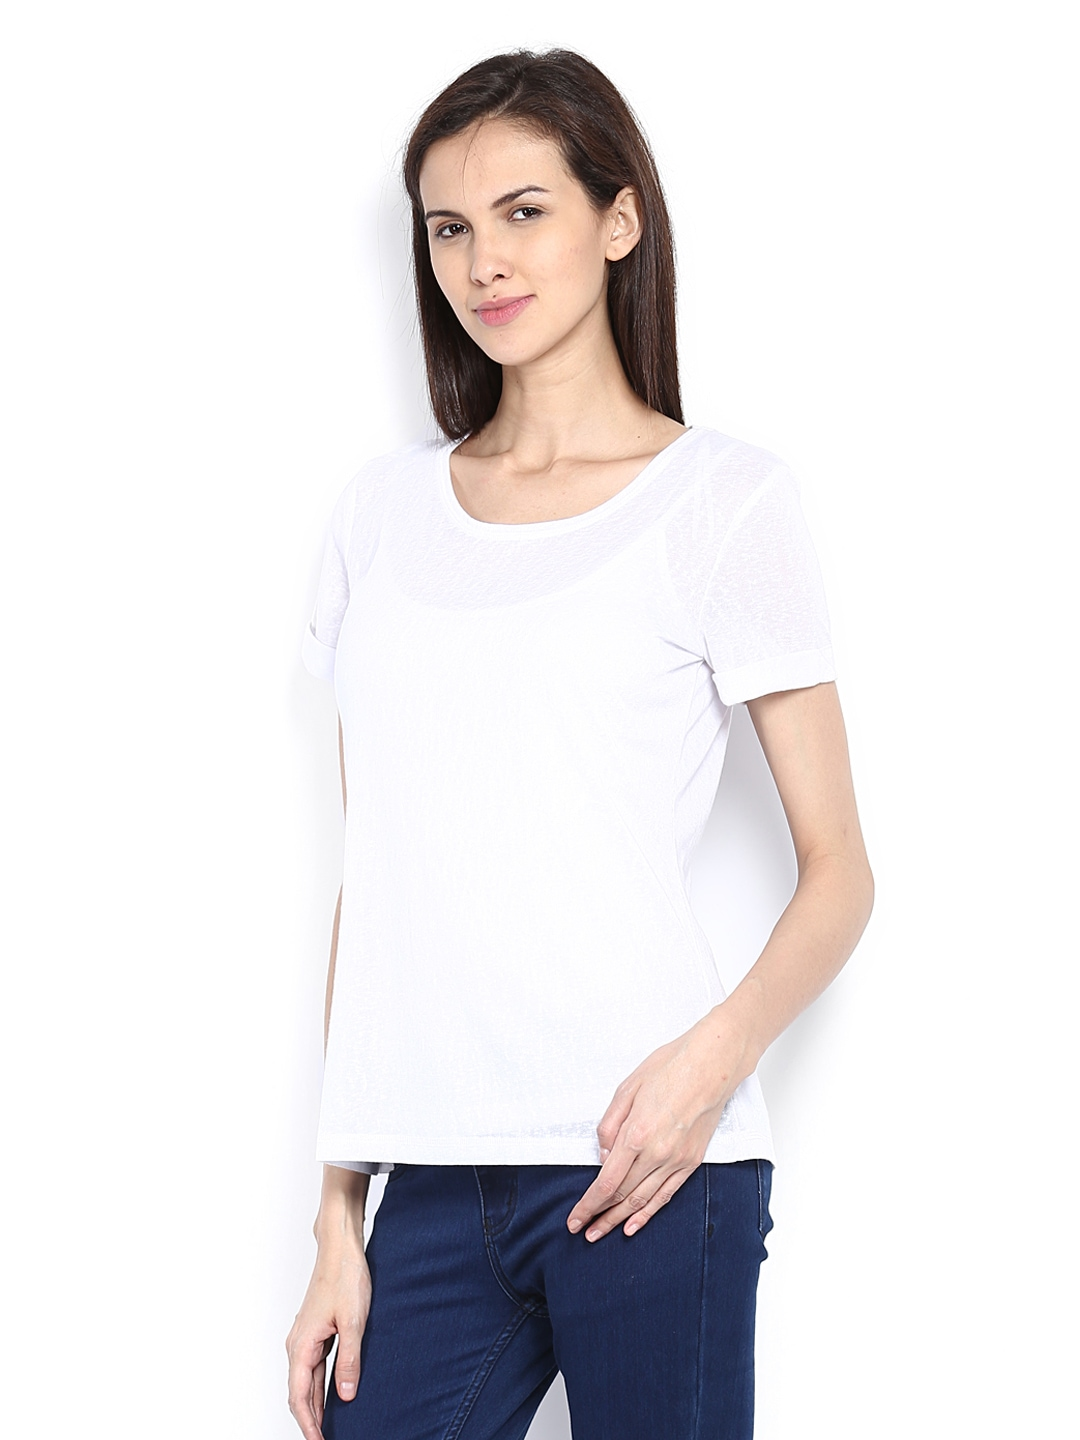 Find great deals on eBay for jm collection tops. Shop with confidence.